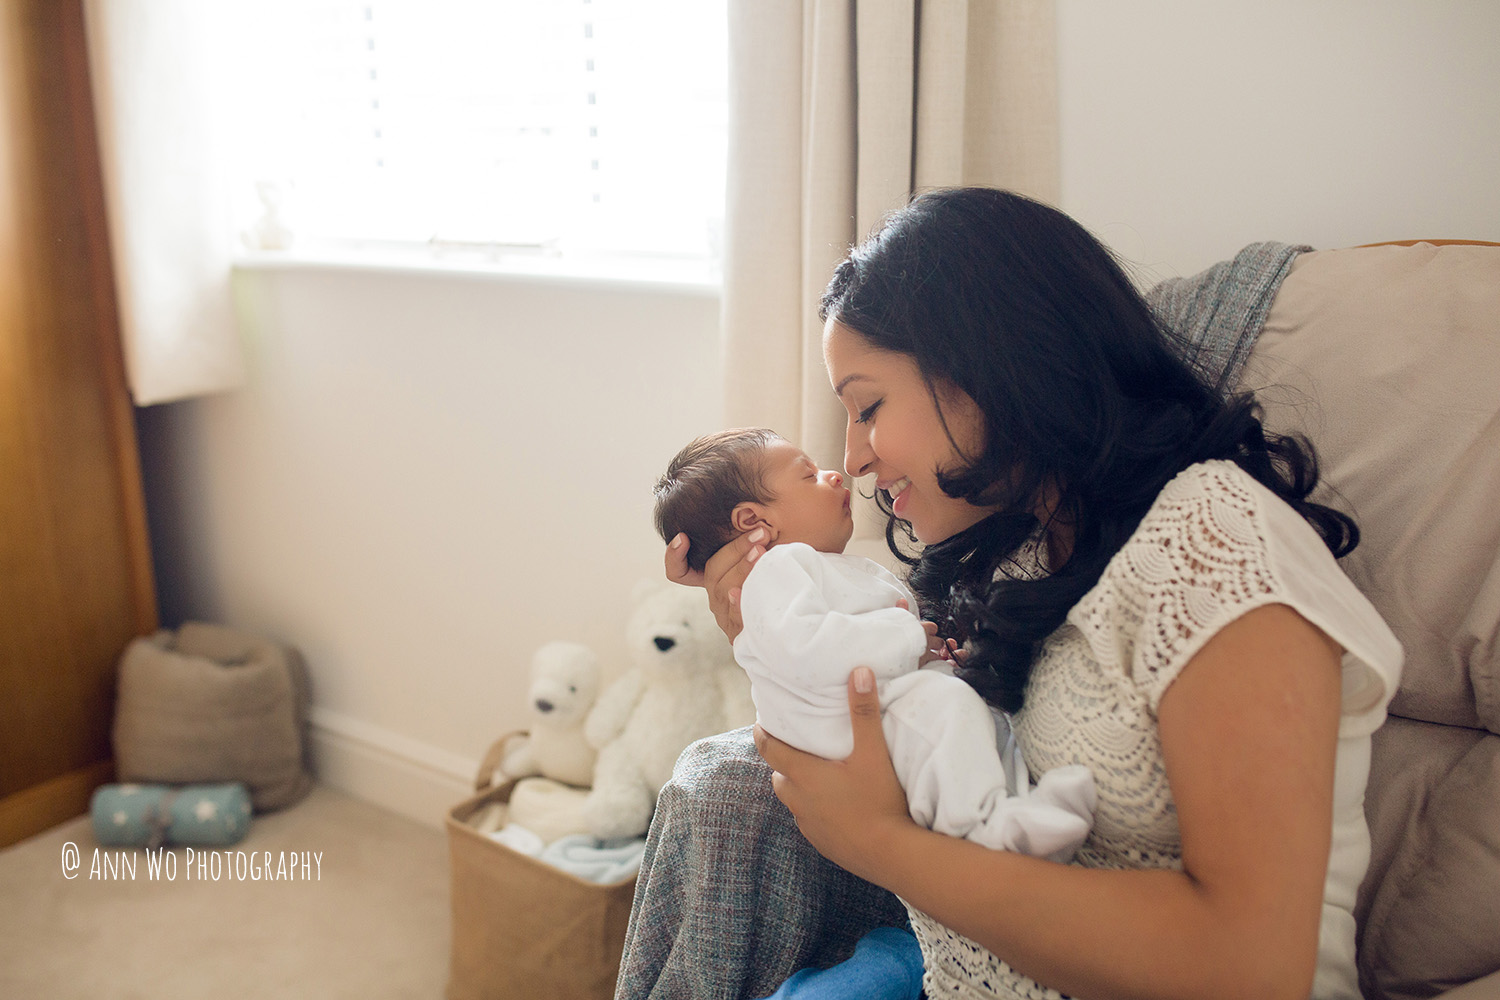 086-newborn-photography-at-home-ann-wo-london-52.JPG